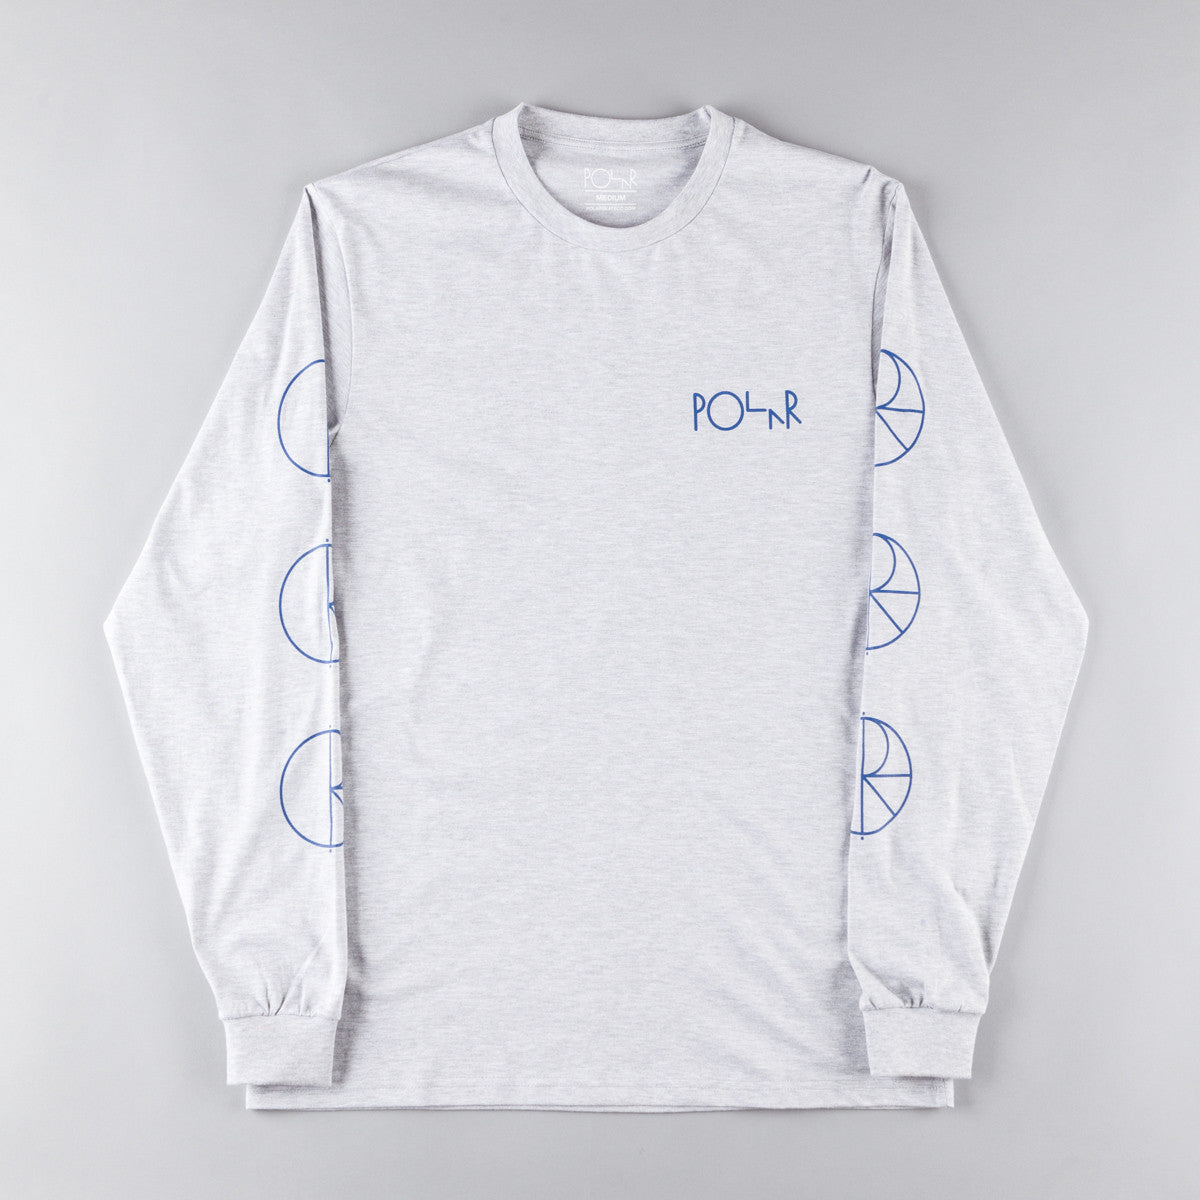 Polar Racing Long Sleeve T-Shirt - Heather Grey